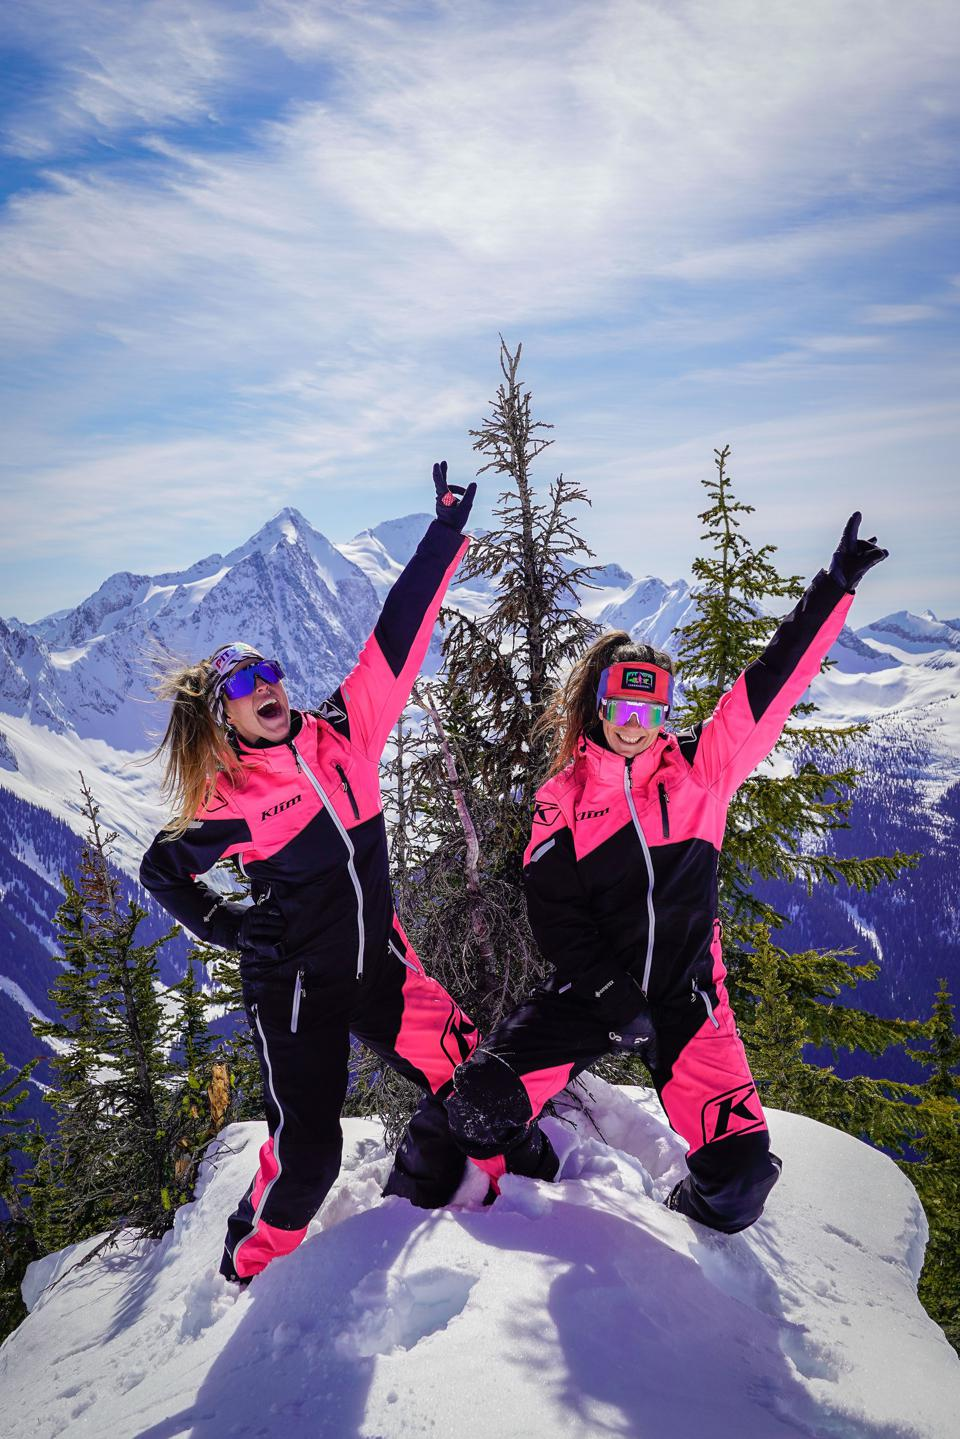 Women are being empowered to rise to the peak of the mountain in adventure sports.